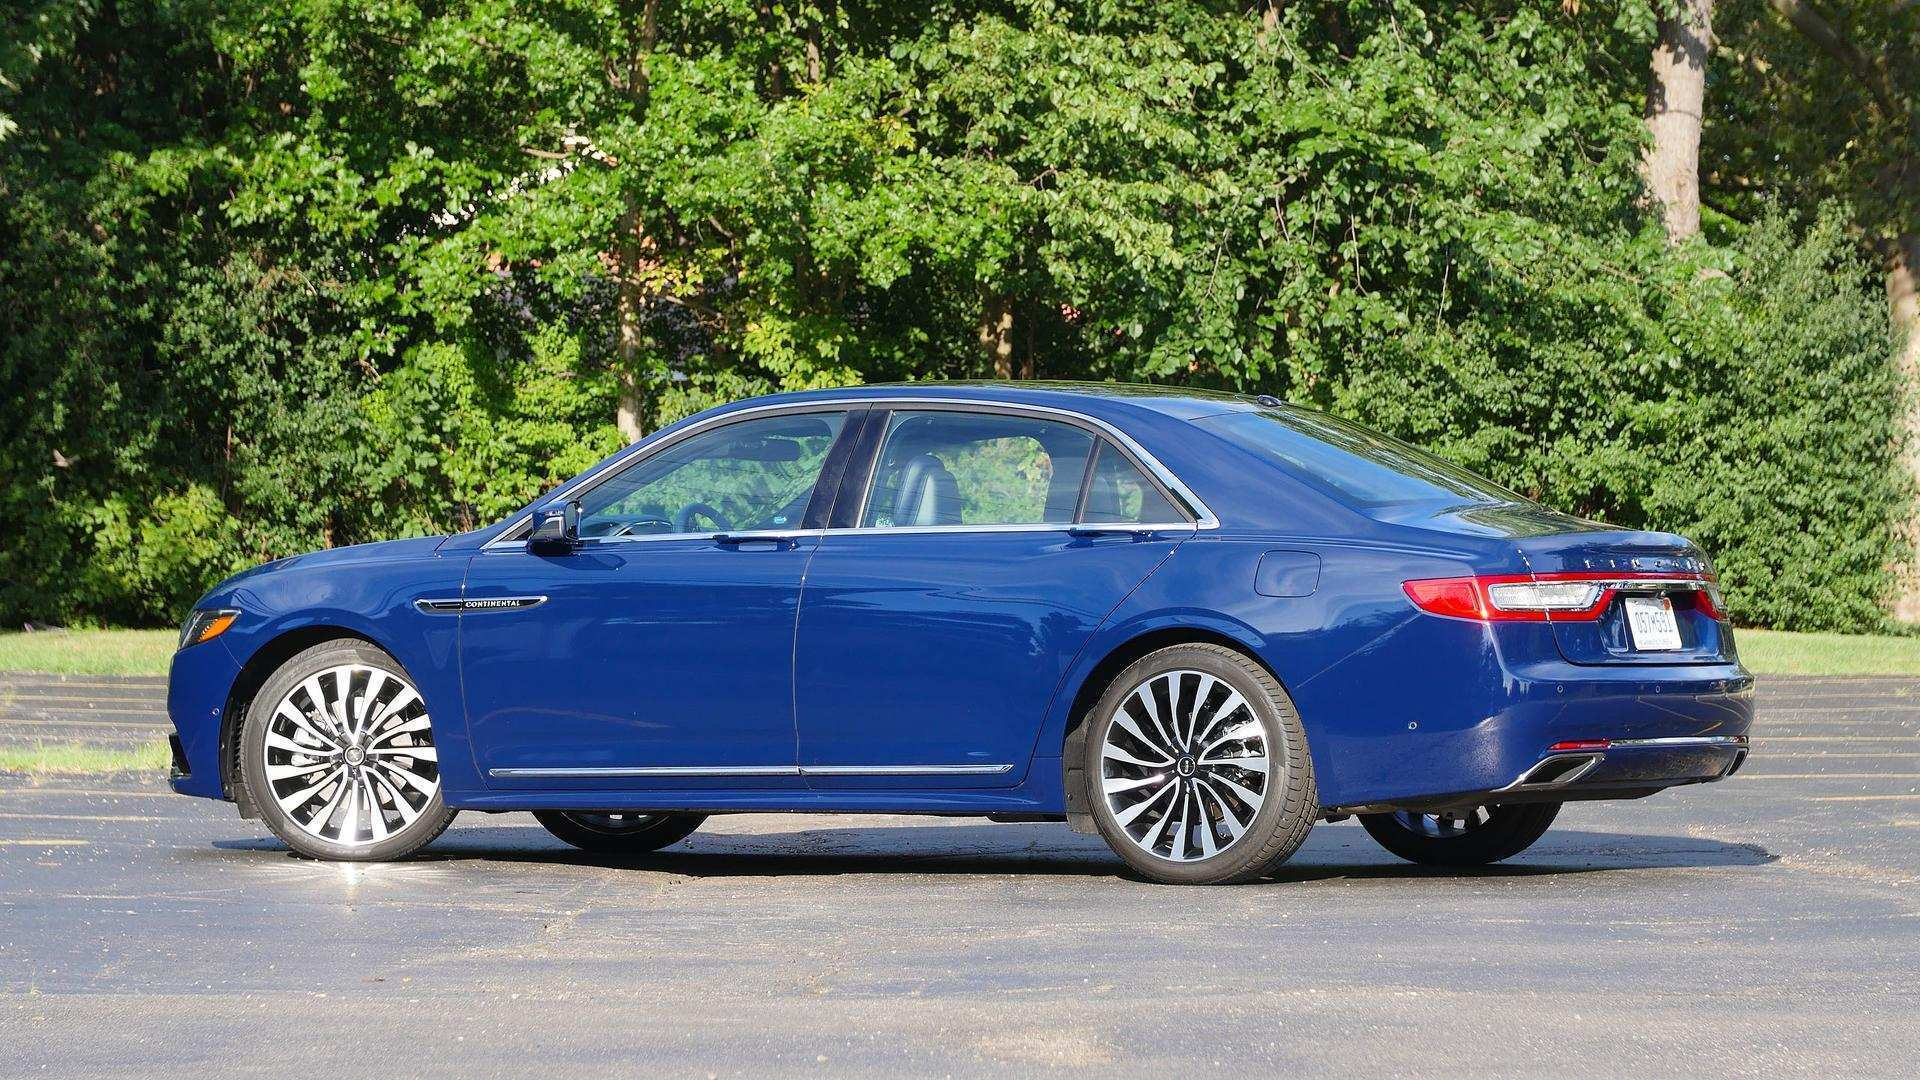 33 Great 2020 Lincoln Continental Exterior and Interior with 2020 Lincoln Continental